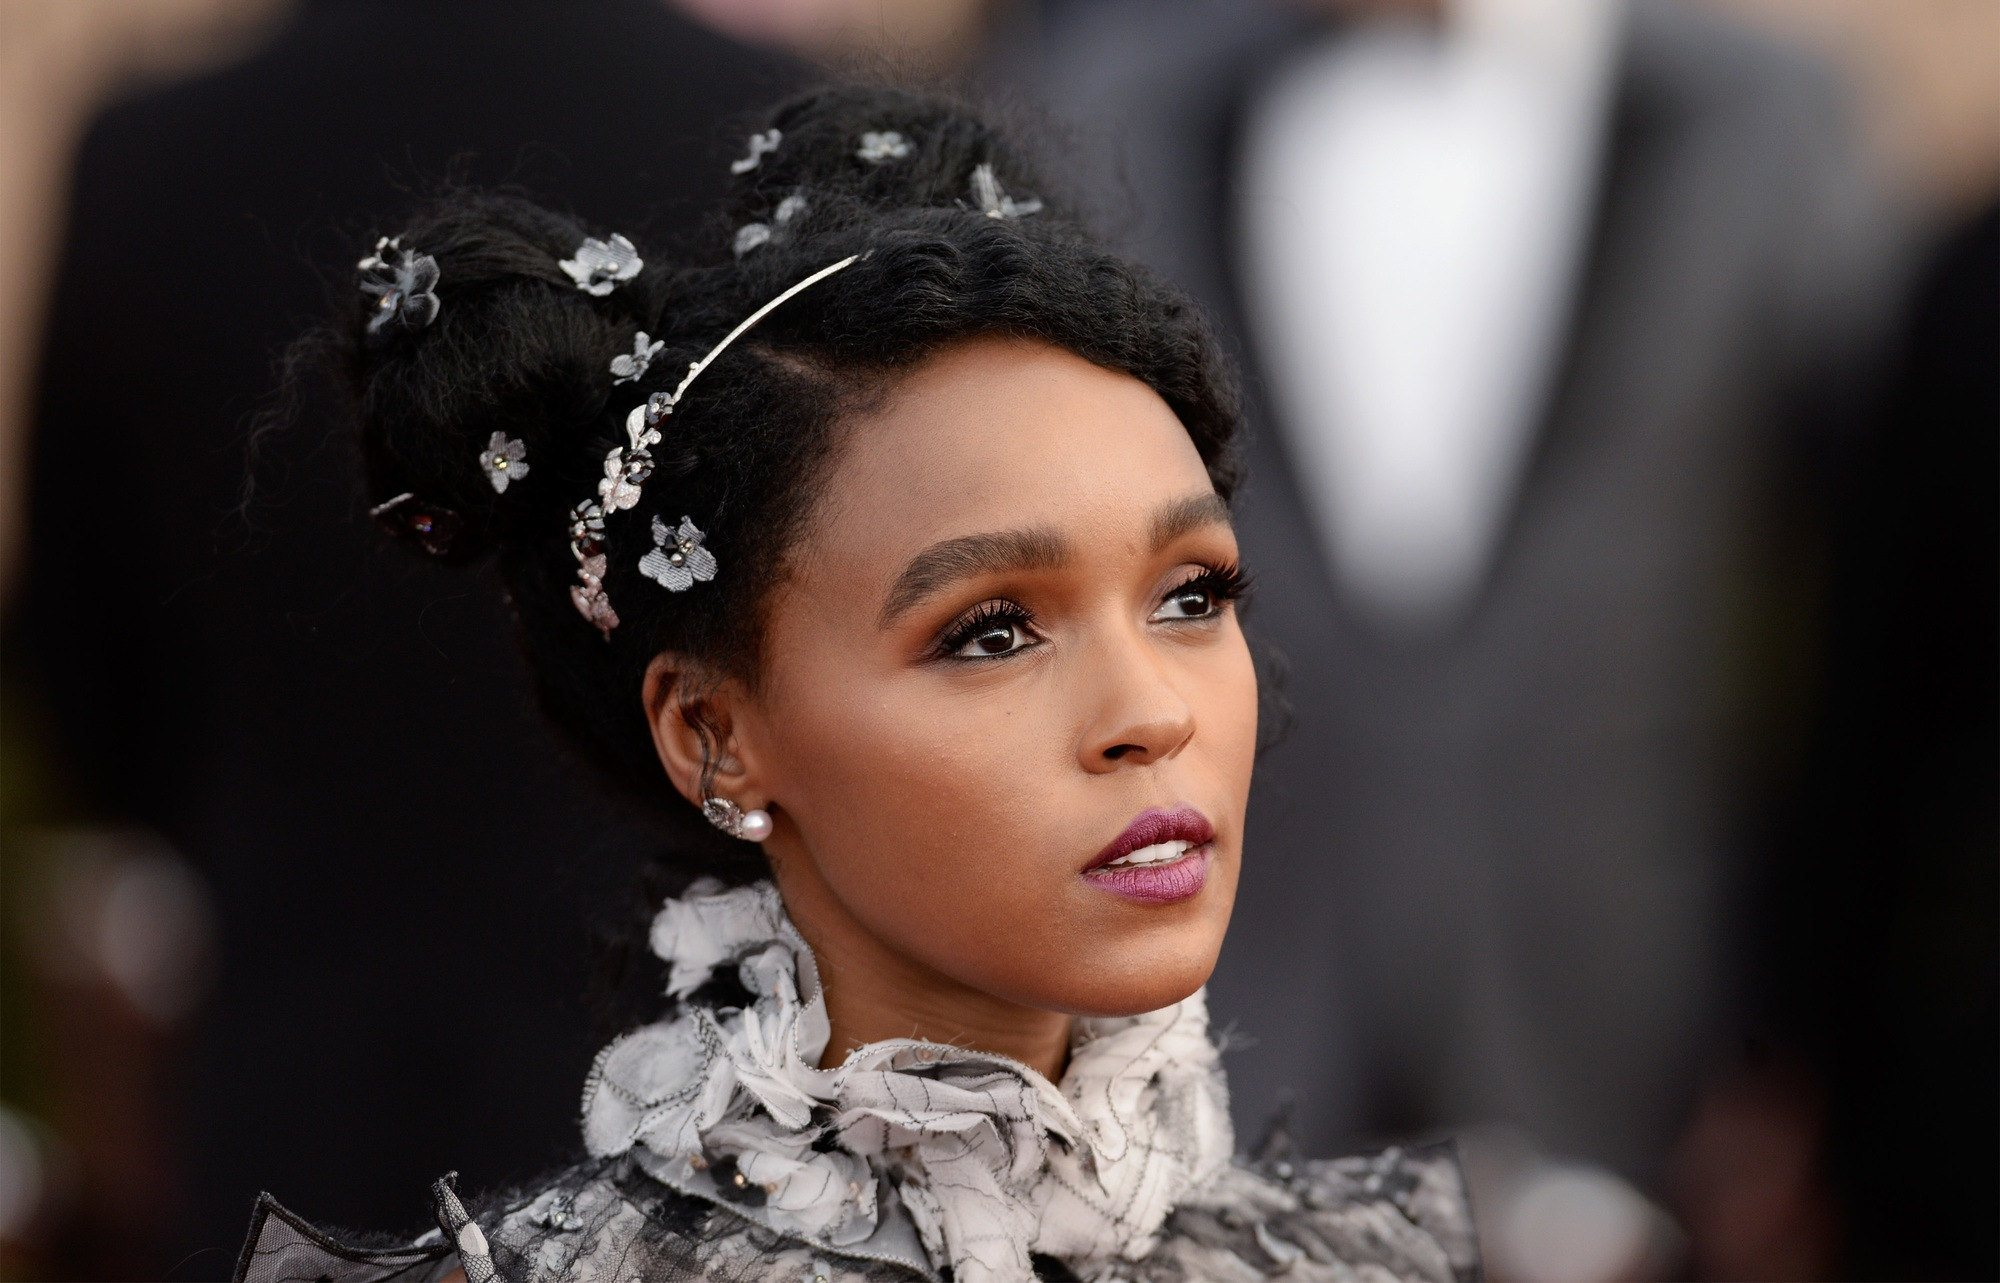 Red carpet hairstyles: Janelle Monae with a twin bun updo with floral accessories